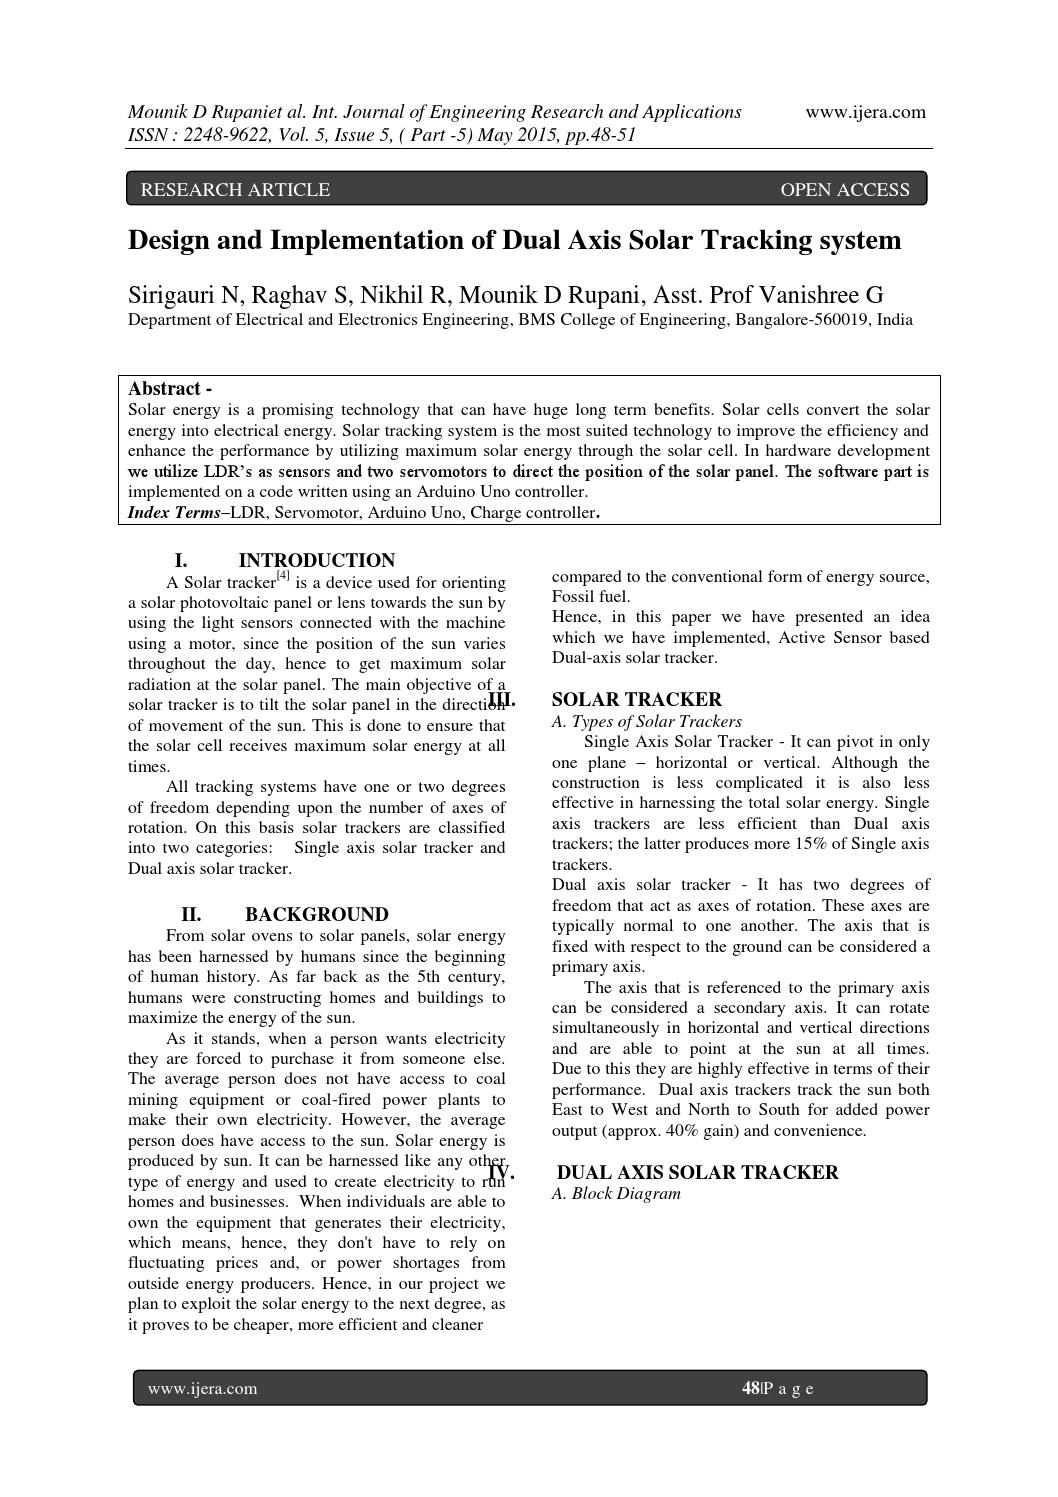 Design And Implementation Of Dual Axis Solar Tracking System By Ijera Editor Issuu